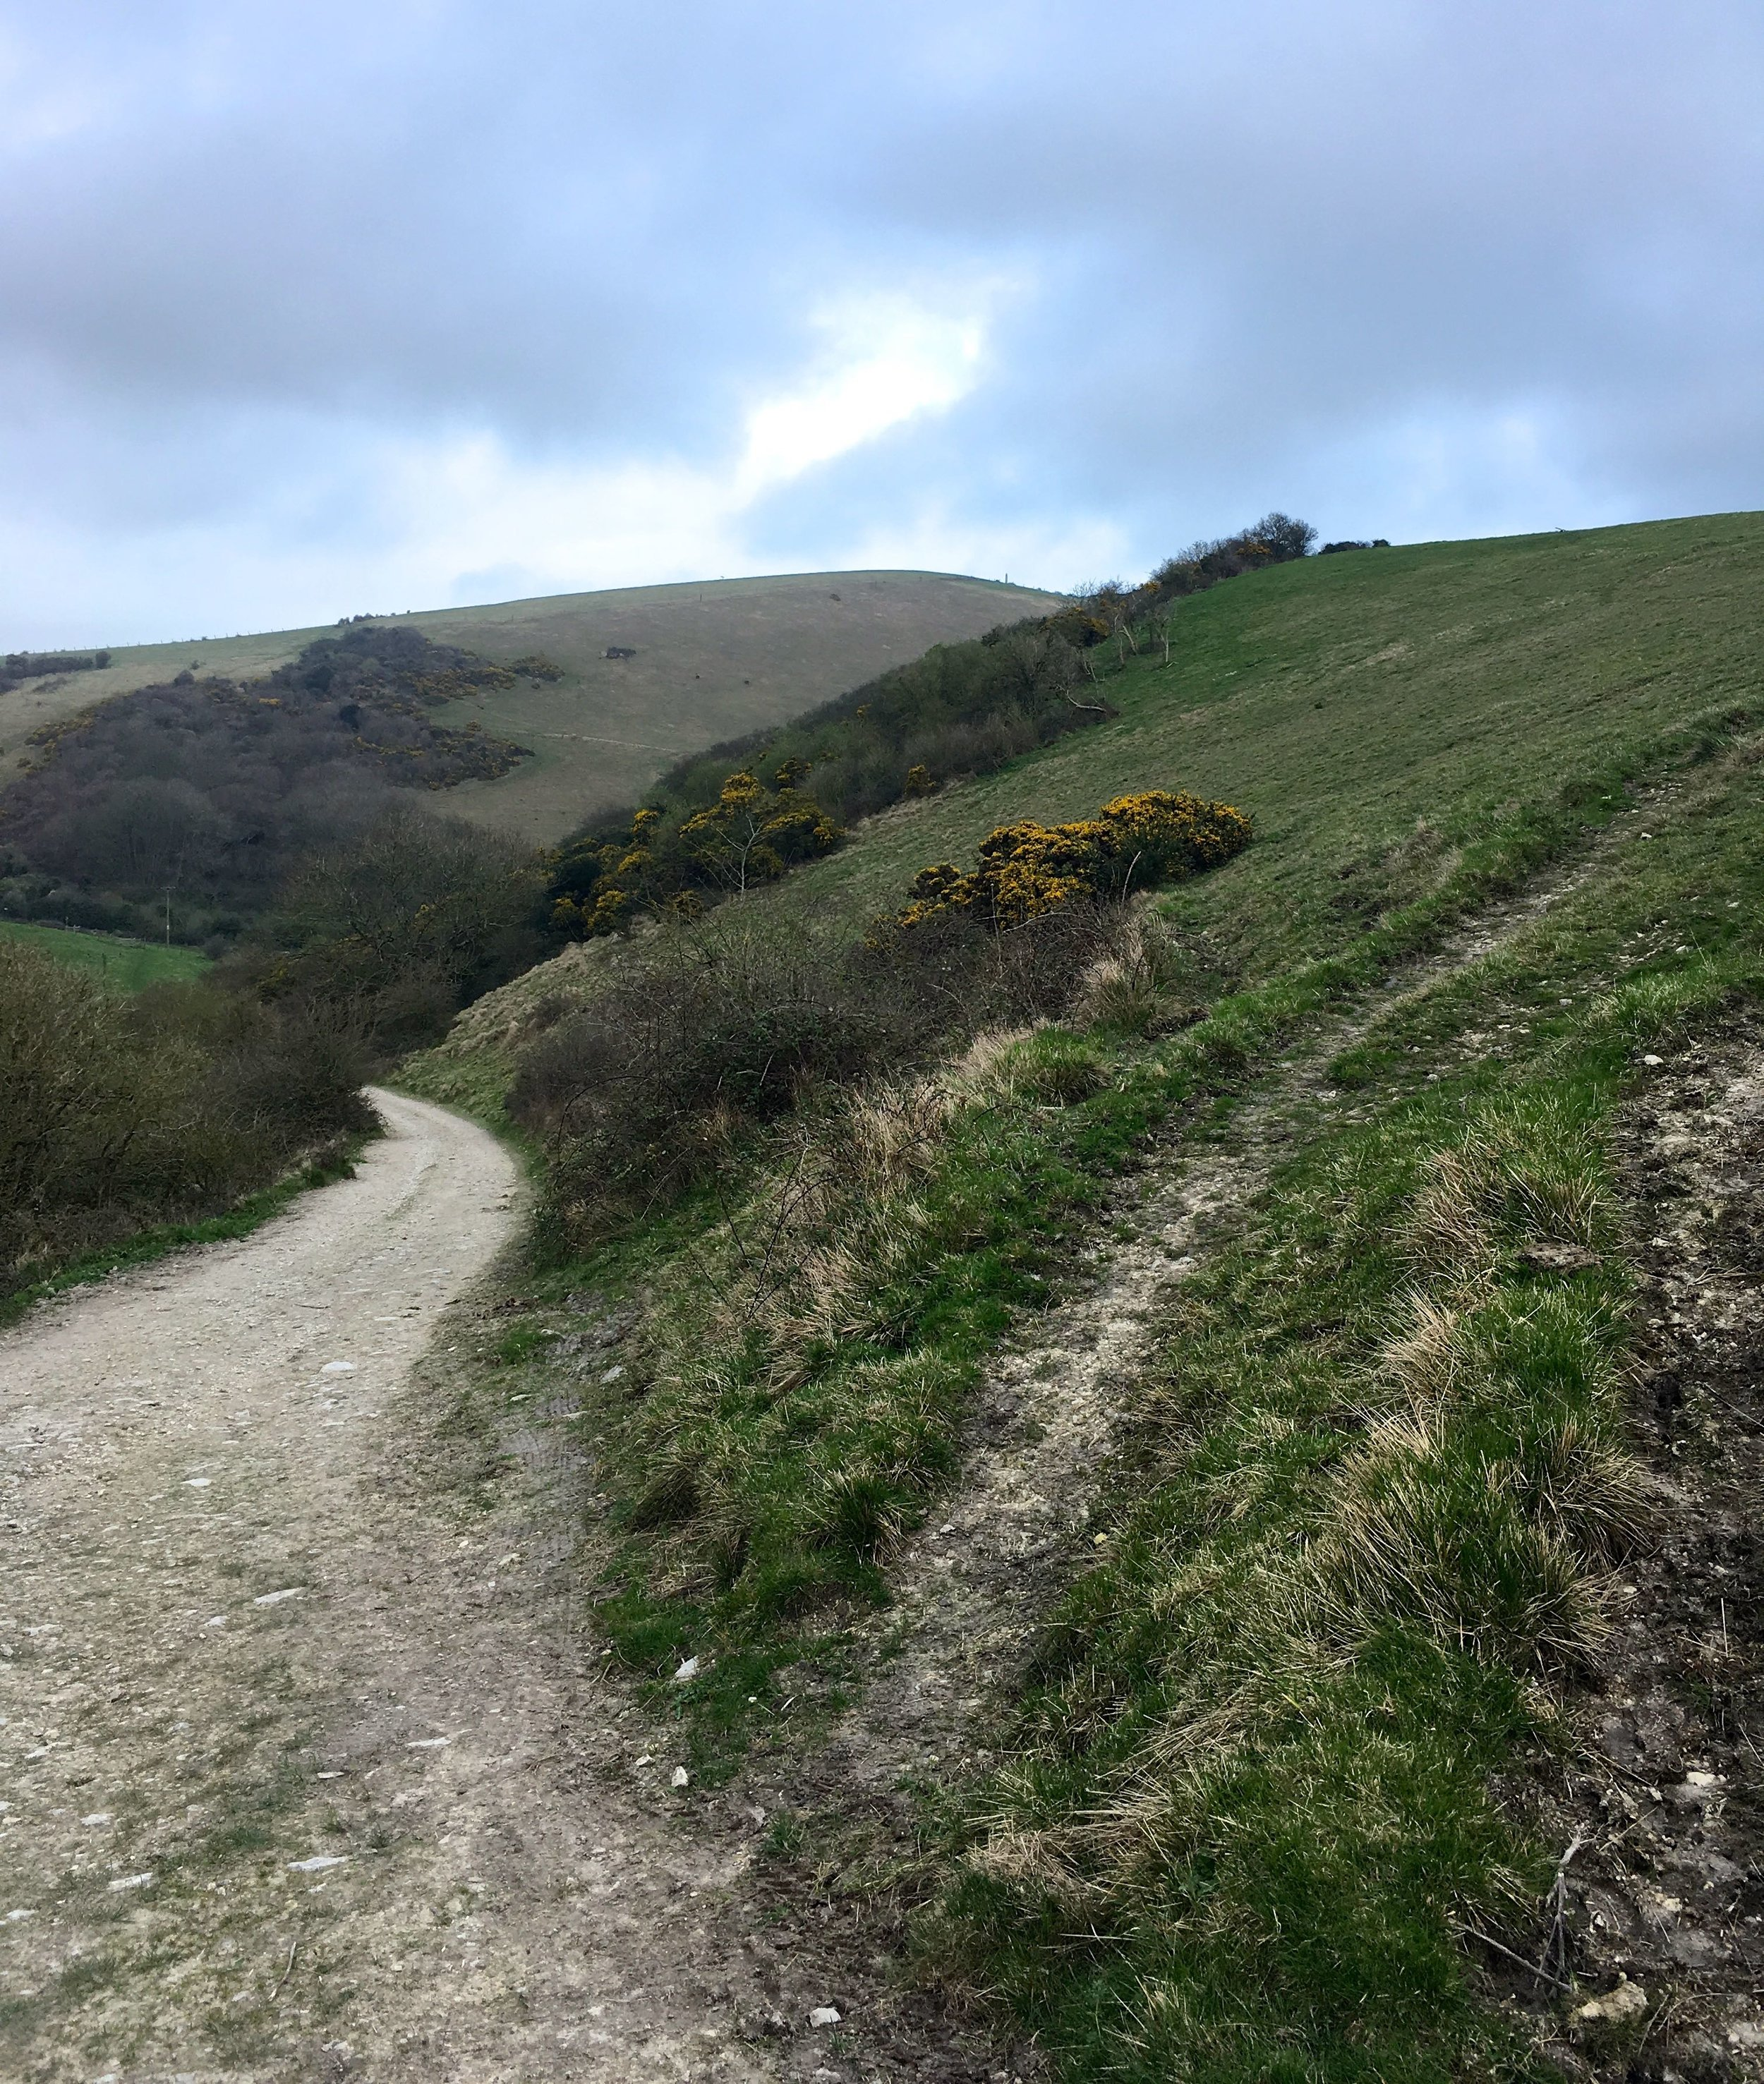 leaving the Purbeck Ridgeway on our way back to the cottage